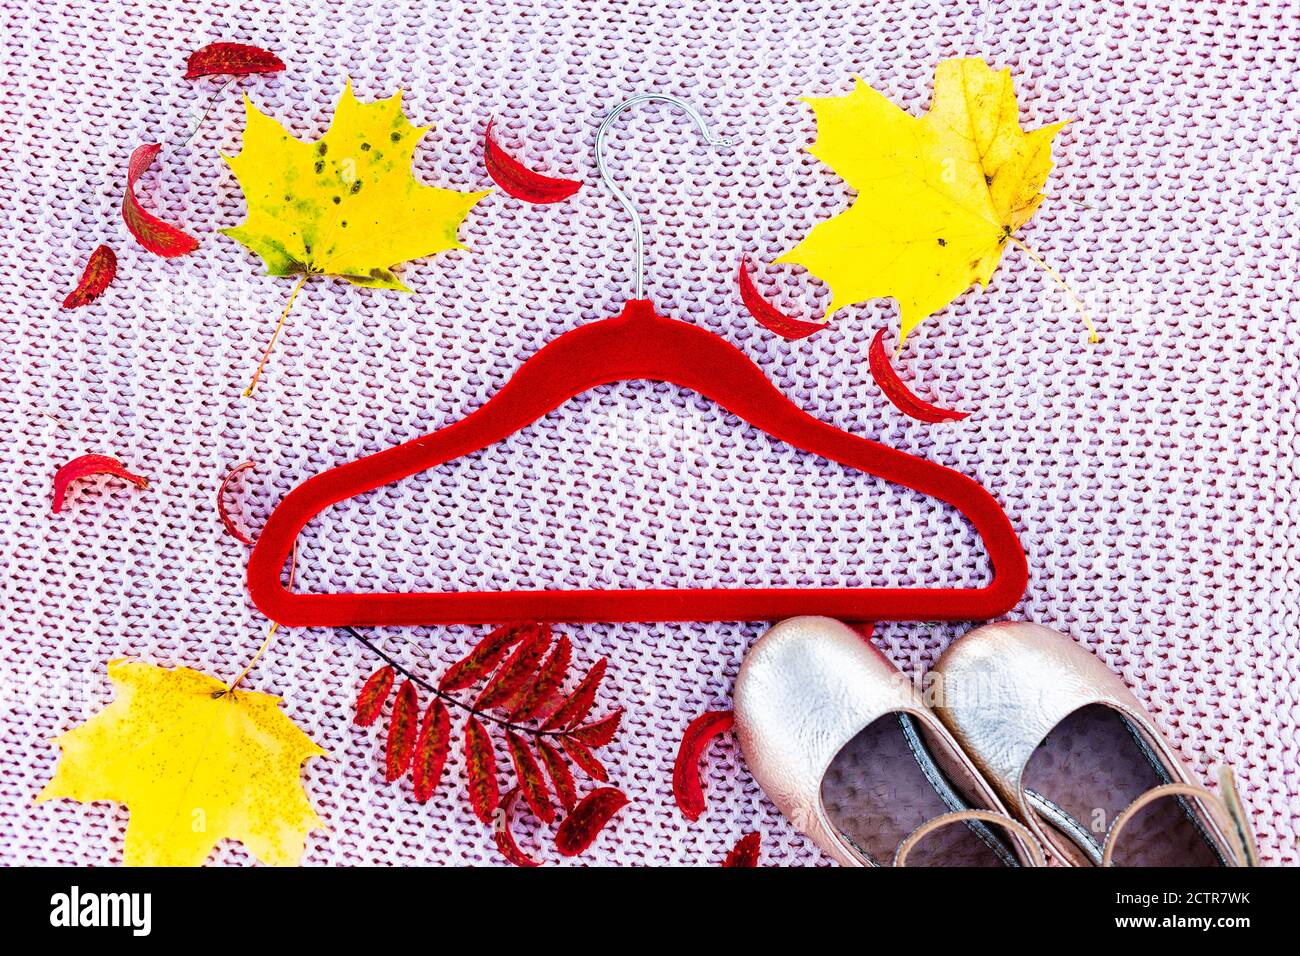 A clothes hanger and golden shoes lie among autumn colorful leaves Stock Photo